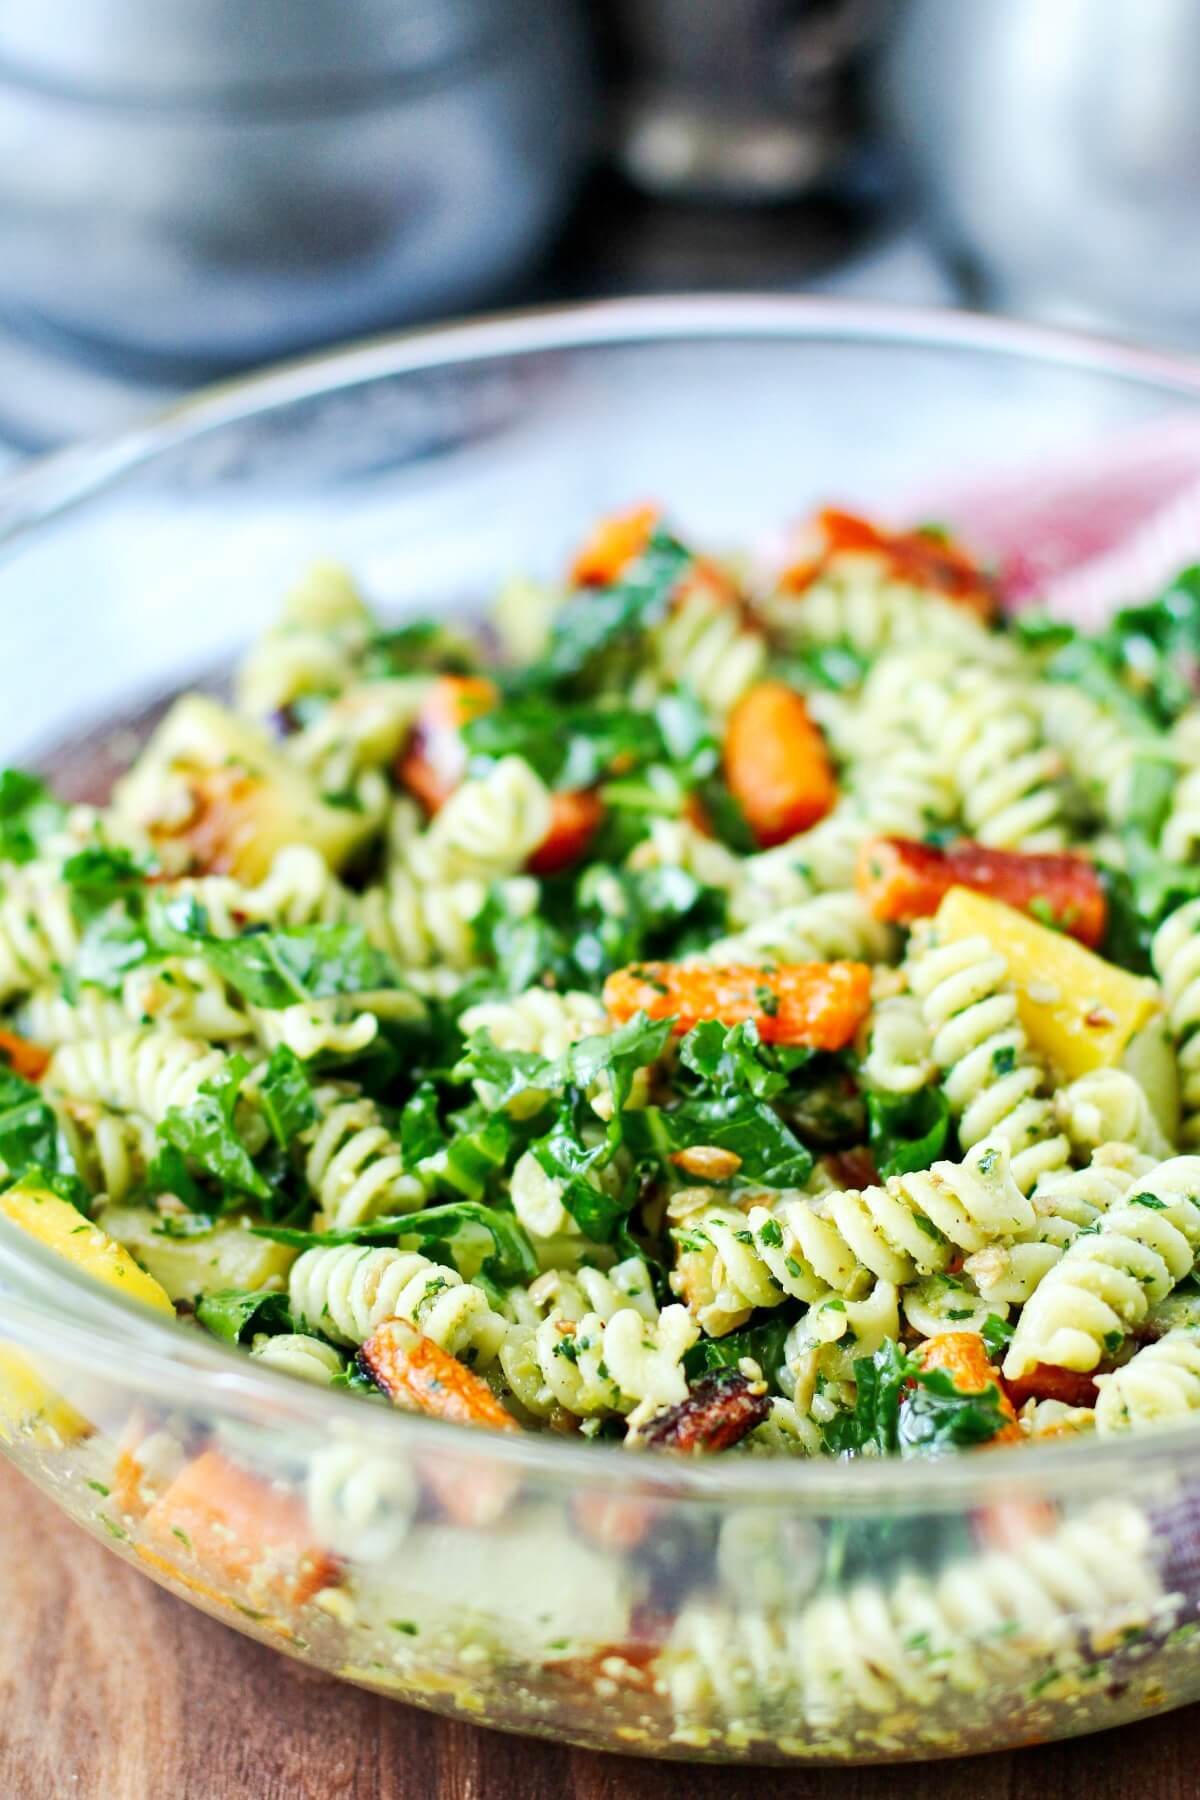 Roasted Carrots with pasta and kale